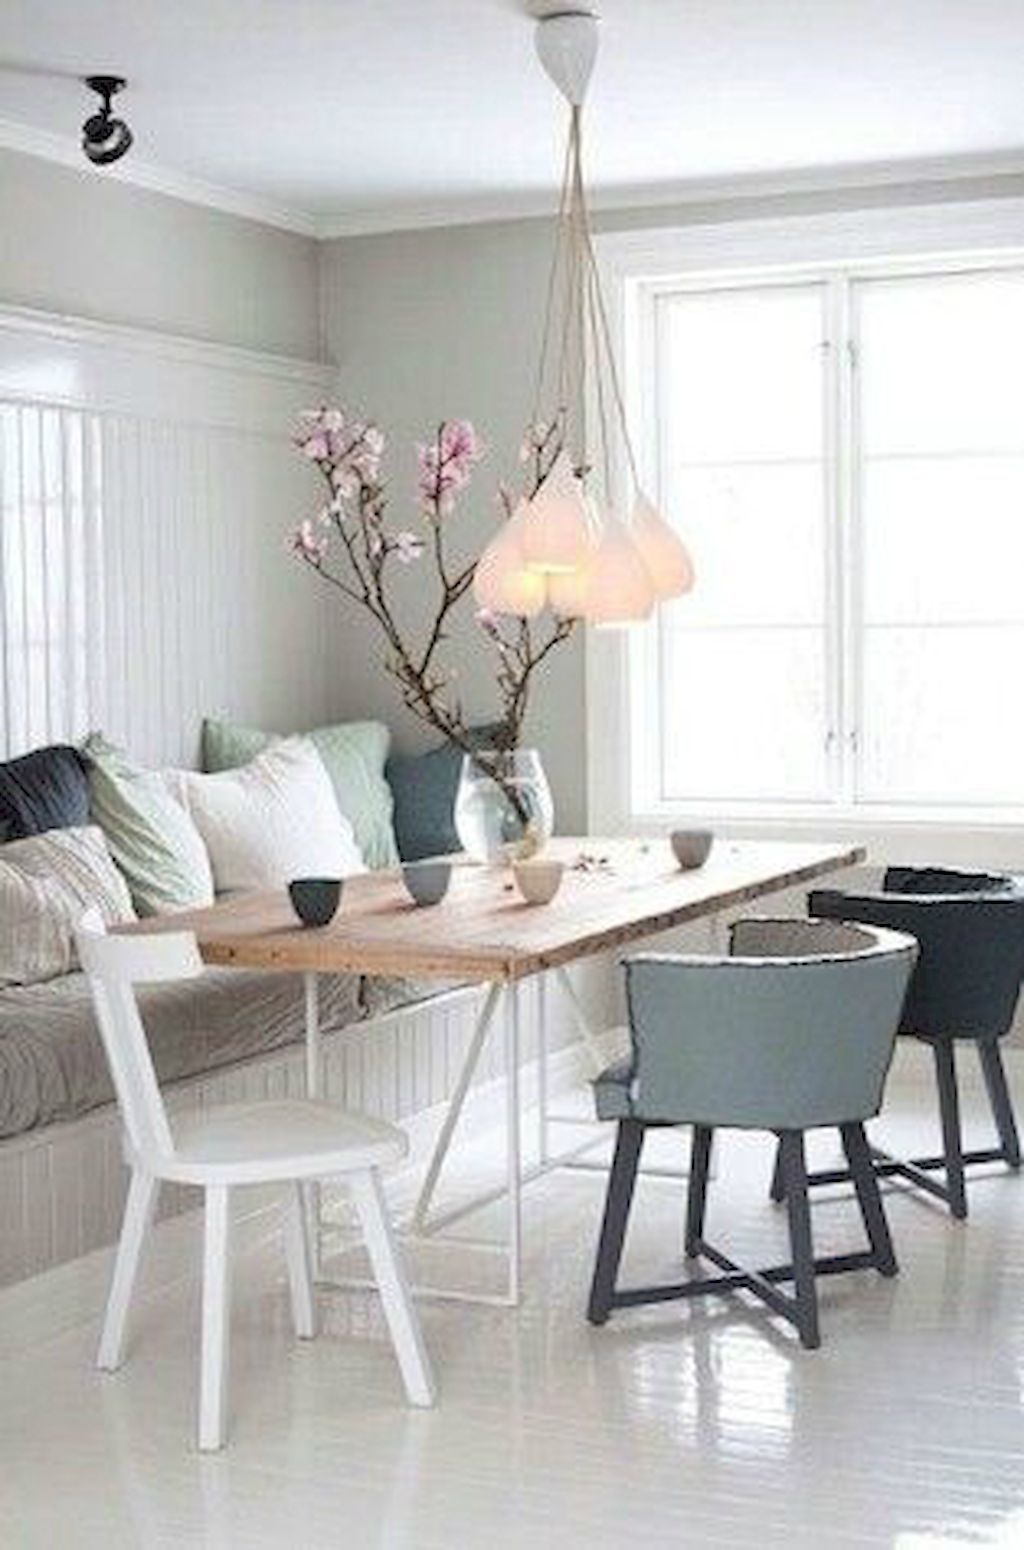 75 Small Dining Room Table & Decor Ideas  Small Dining Rooms Beauteous Scandinavian Dining Room Sets Decorating Design